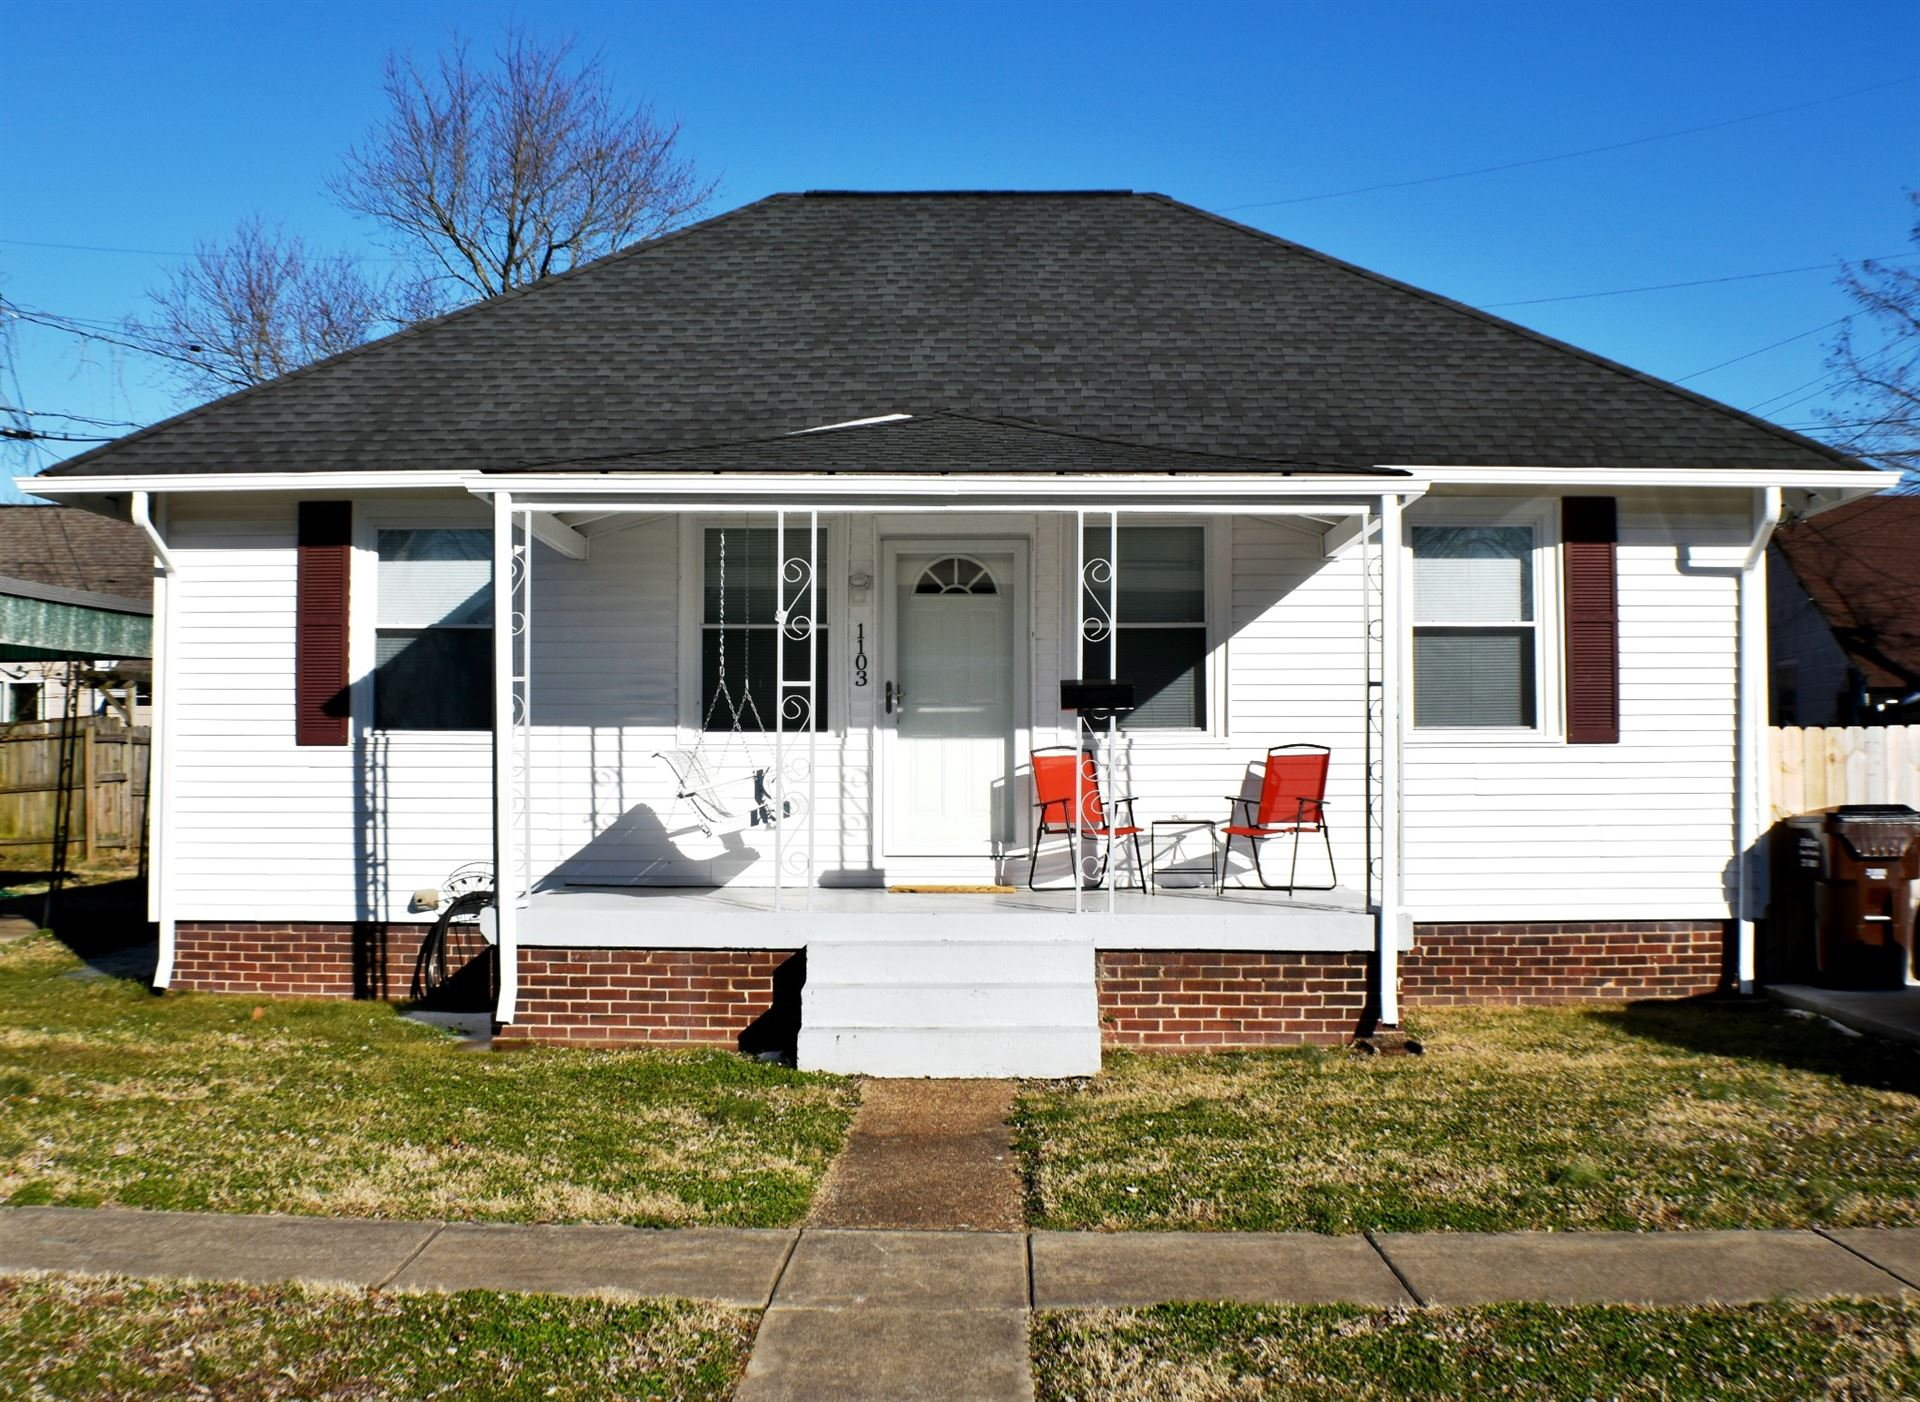 1103 Debow St, Old Hickory, TN 37138 - MLS#: 2230758